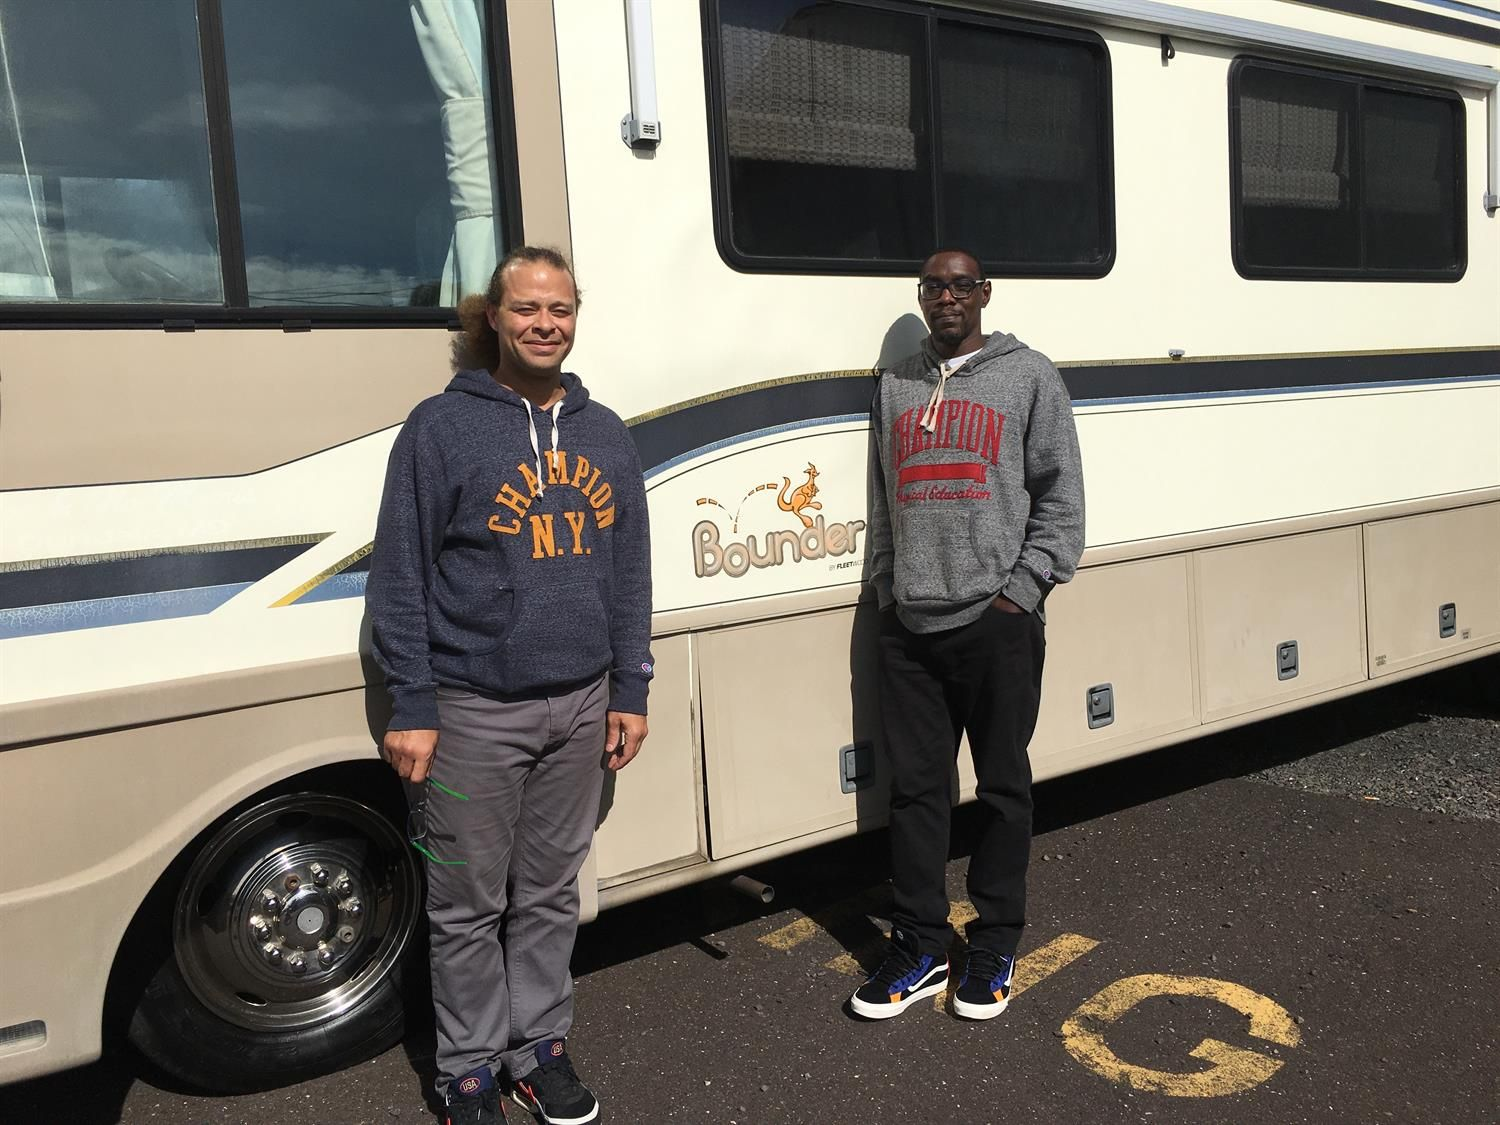 Congratulations Mark The Open Road Awaits You And Your New 1997 Fleetwood Bounder Thank You Again Fretz Rv Al Papa In 2020 Fleetwood Bounder Fleetwood Rv